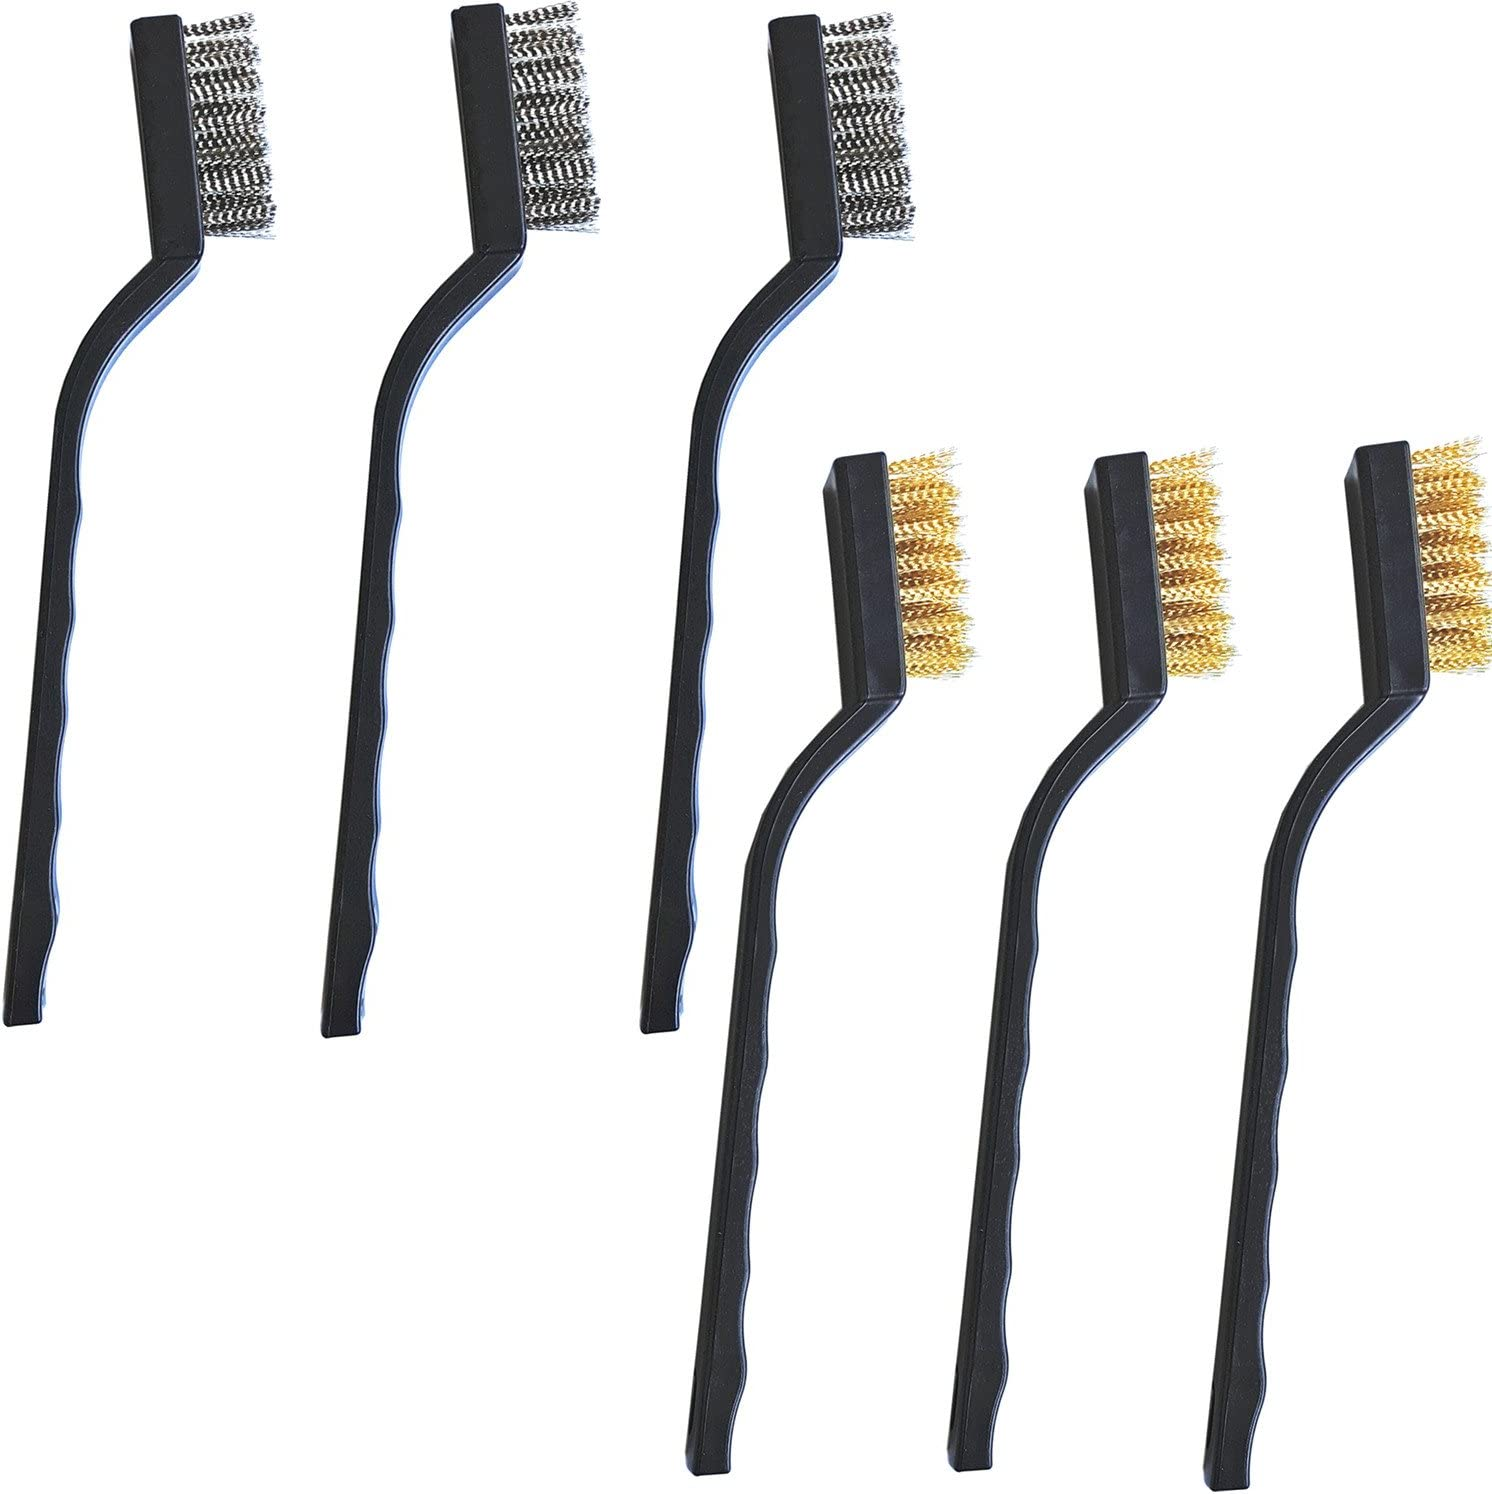 Cleaning Welding Slag Rust Scrubbing Brush 6 Pieces Scratch Wire Brushes Set Stainless Steel Brass Wire Brush for Automotive